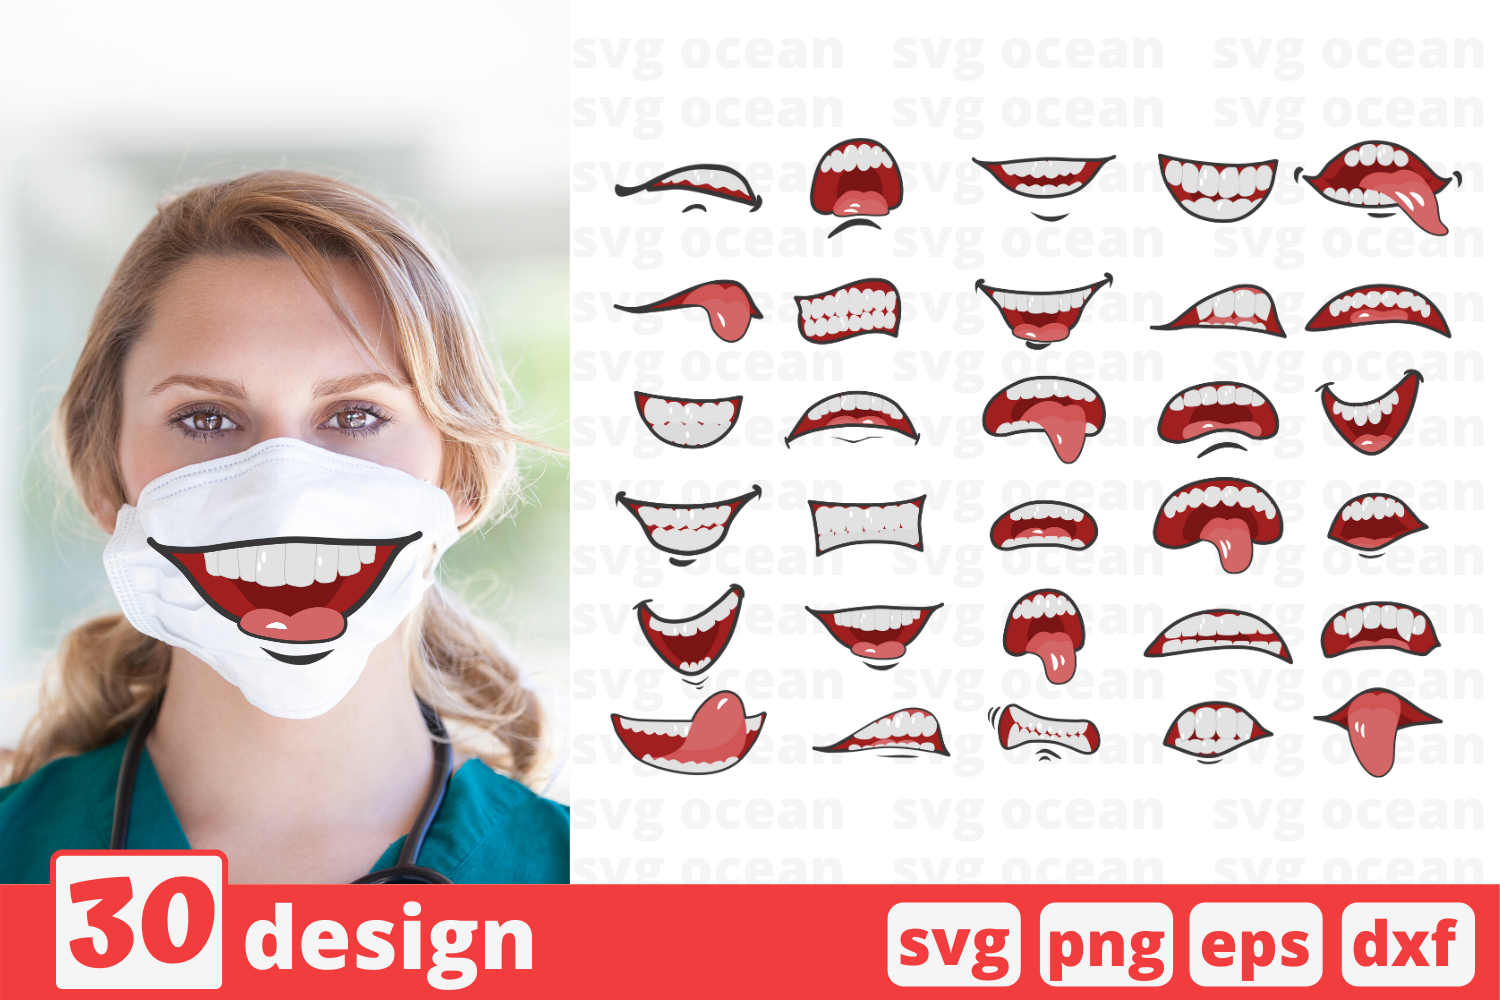 Download Free 30 Cartoon Mouths Face Mask Pattern Graphic By Svgocean for Cricut Explore, Silhouette and other cutting machines.